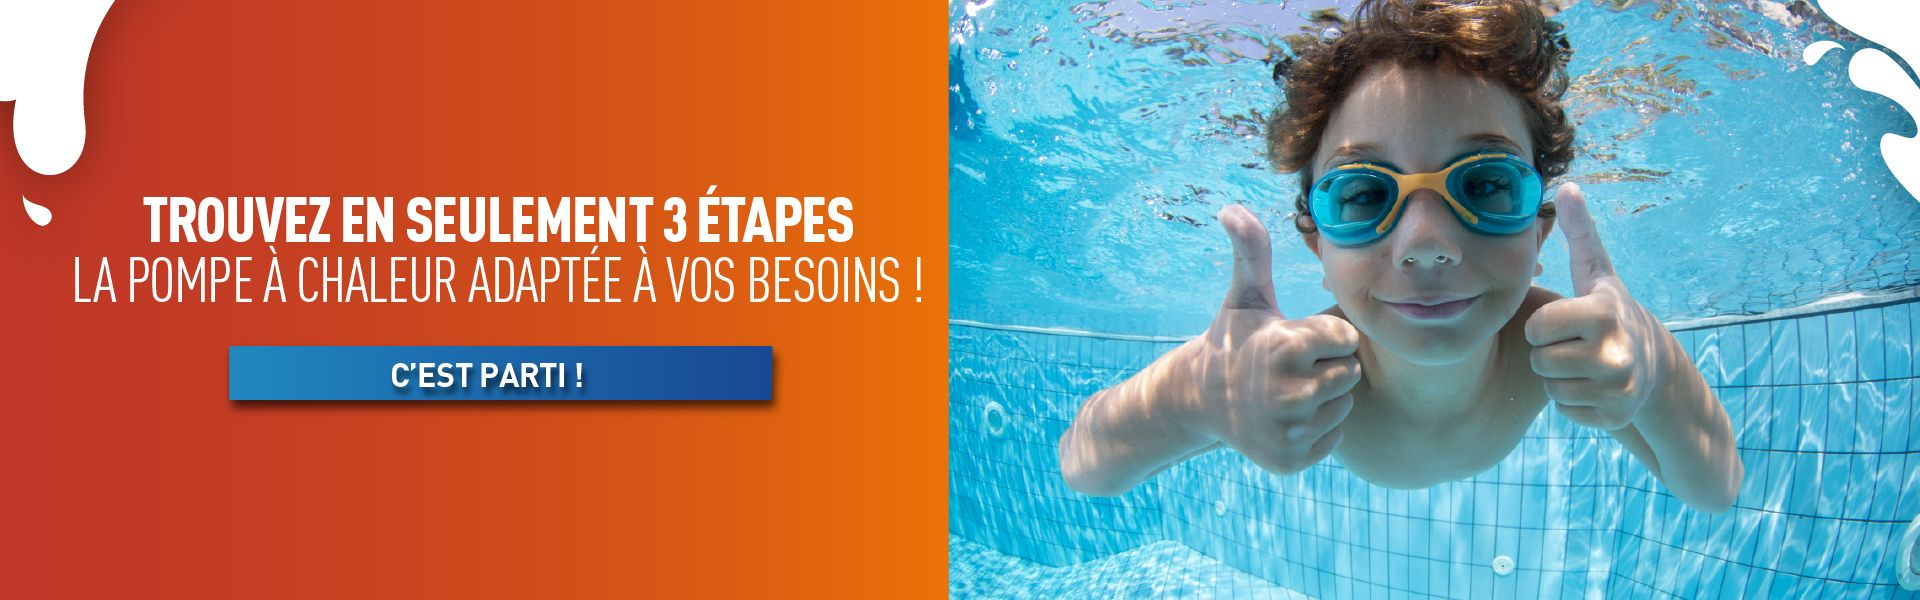 Cash Piscines - Tout Pour La Piscine & Spas Gonflables ... destiné Cash Piscine Bourgoin